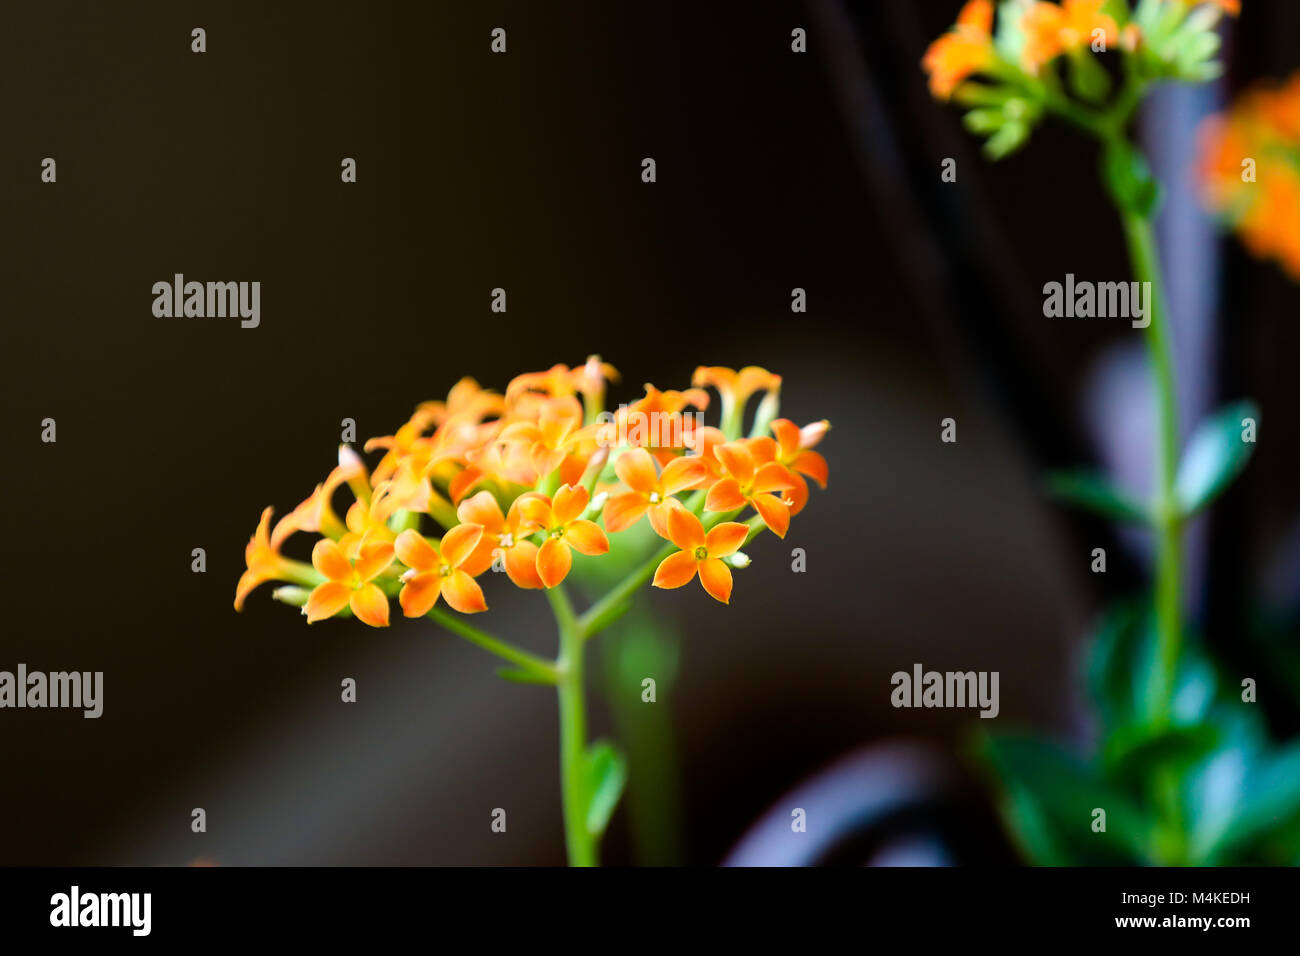 flower madagascar succulent stockfotos flower madagascar succulent bilder alamy. Black Bedroom Furniture Sets. Home Design Ideas